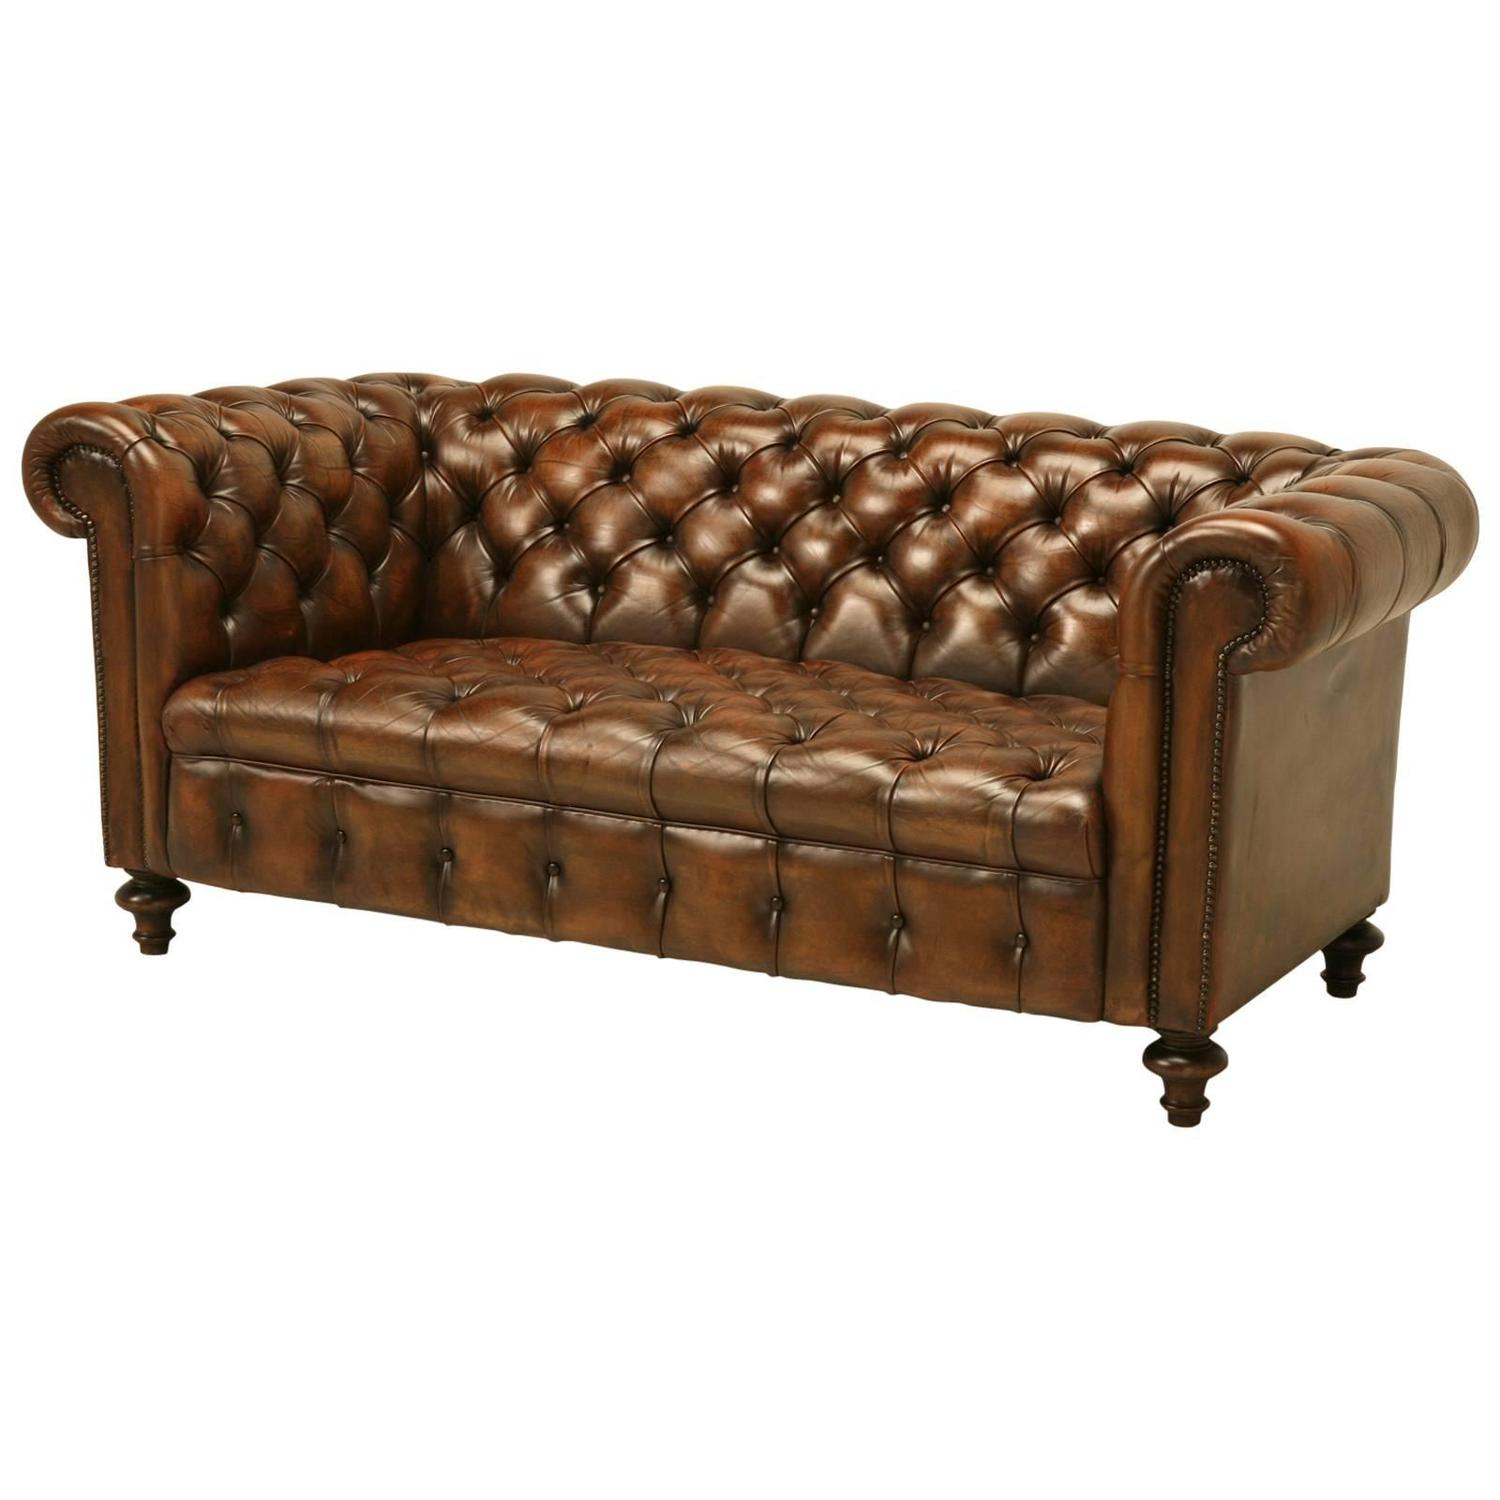 english leather chesterfield sofa at 1stdibs. Black Bedroom Furniture Sets. Home Design Ideas